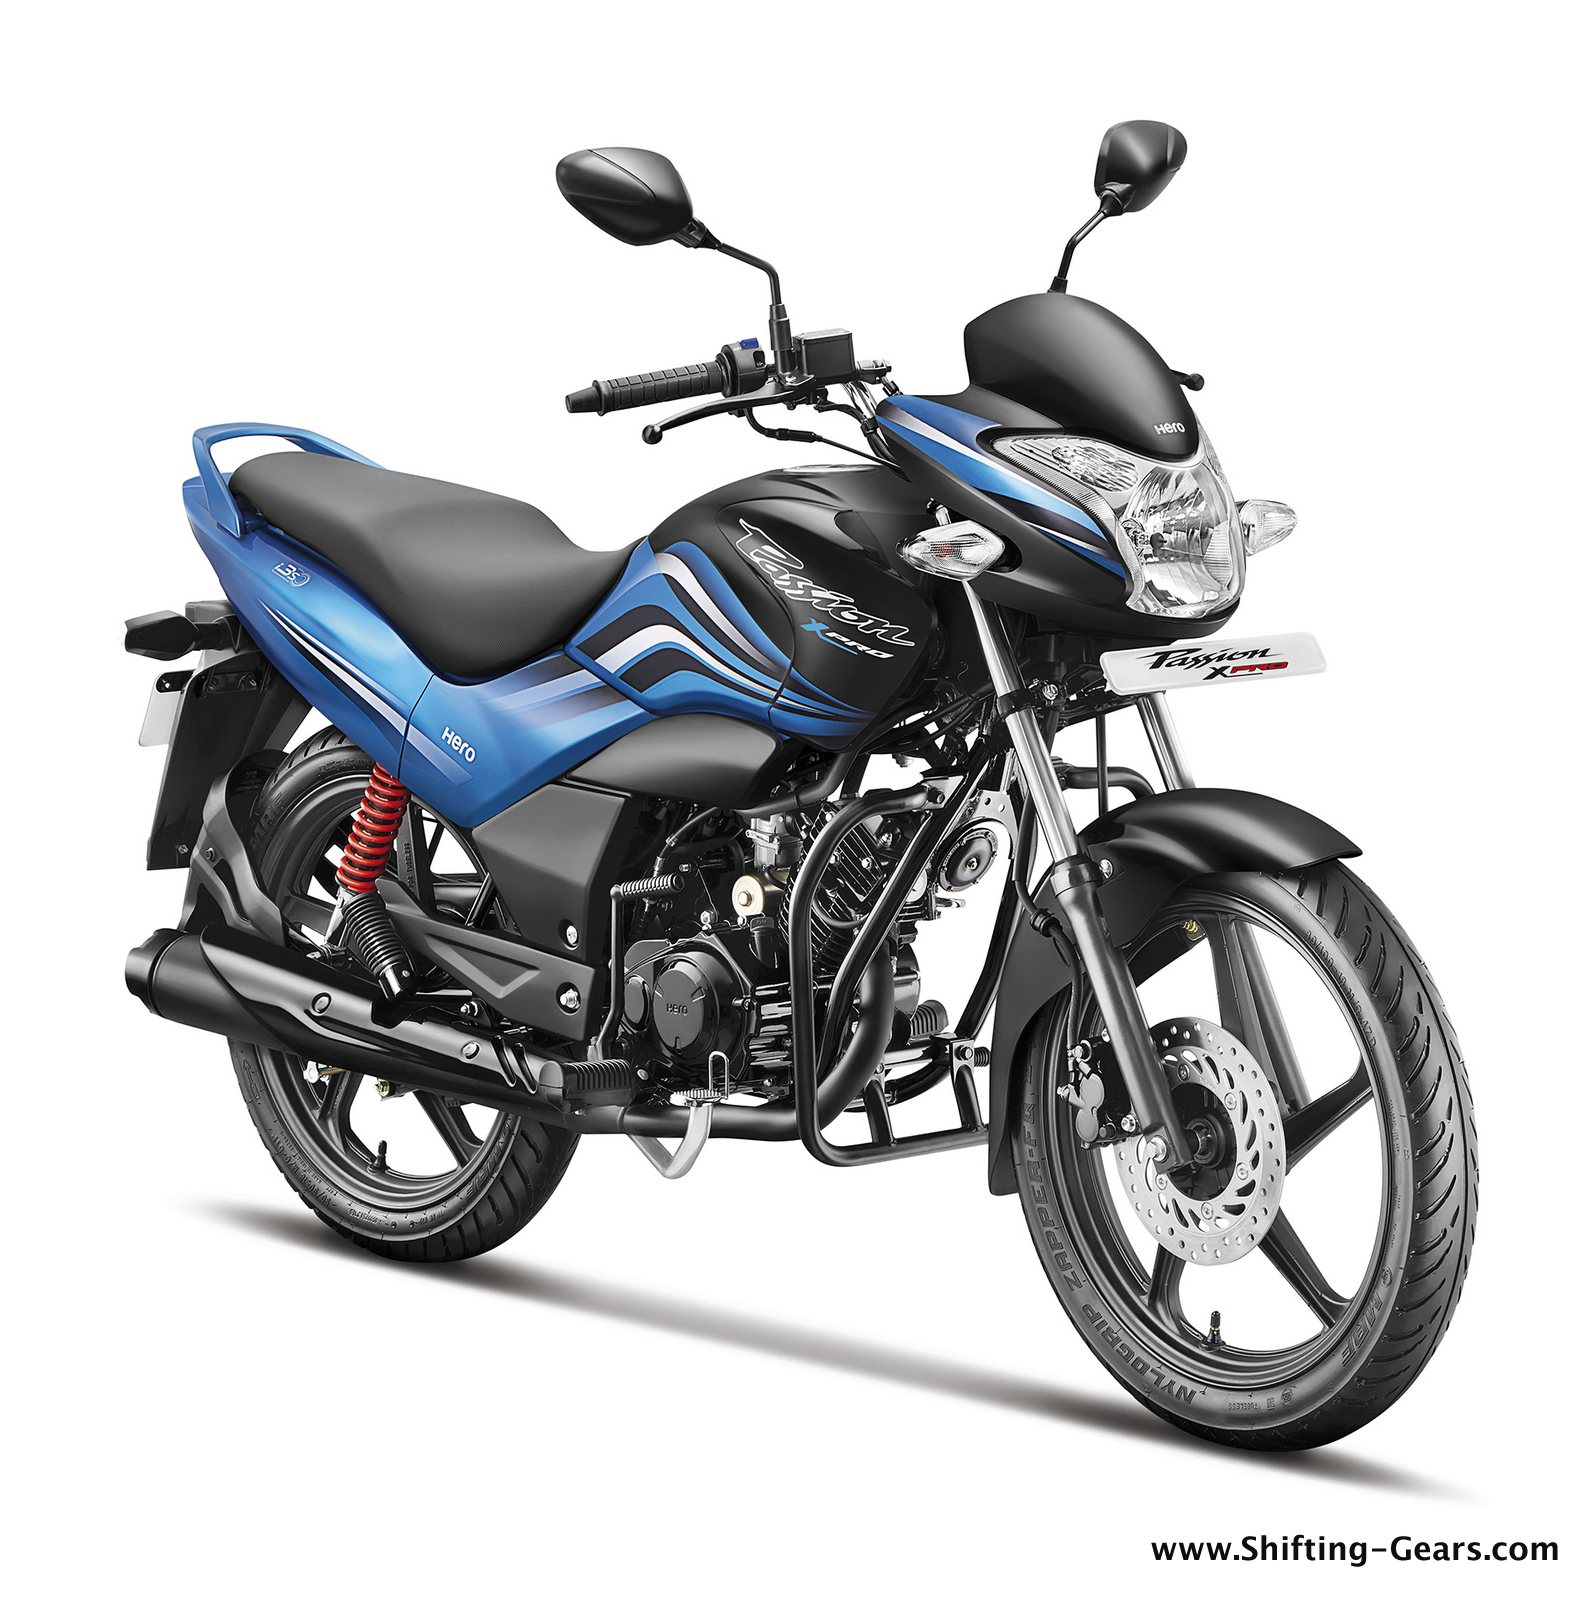 Hero Motocorp Passion X Pro Photo Gallery Shifting Gears